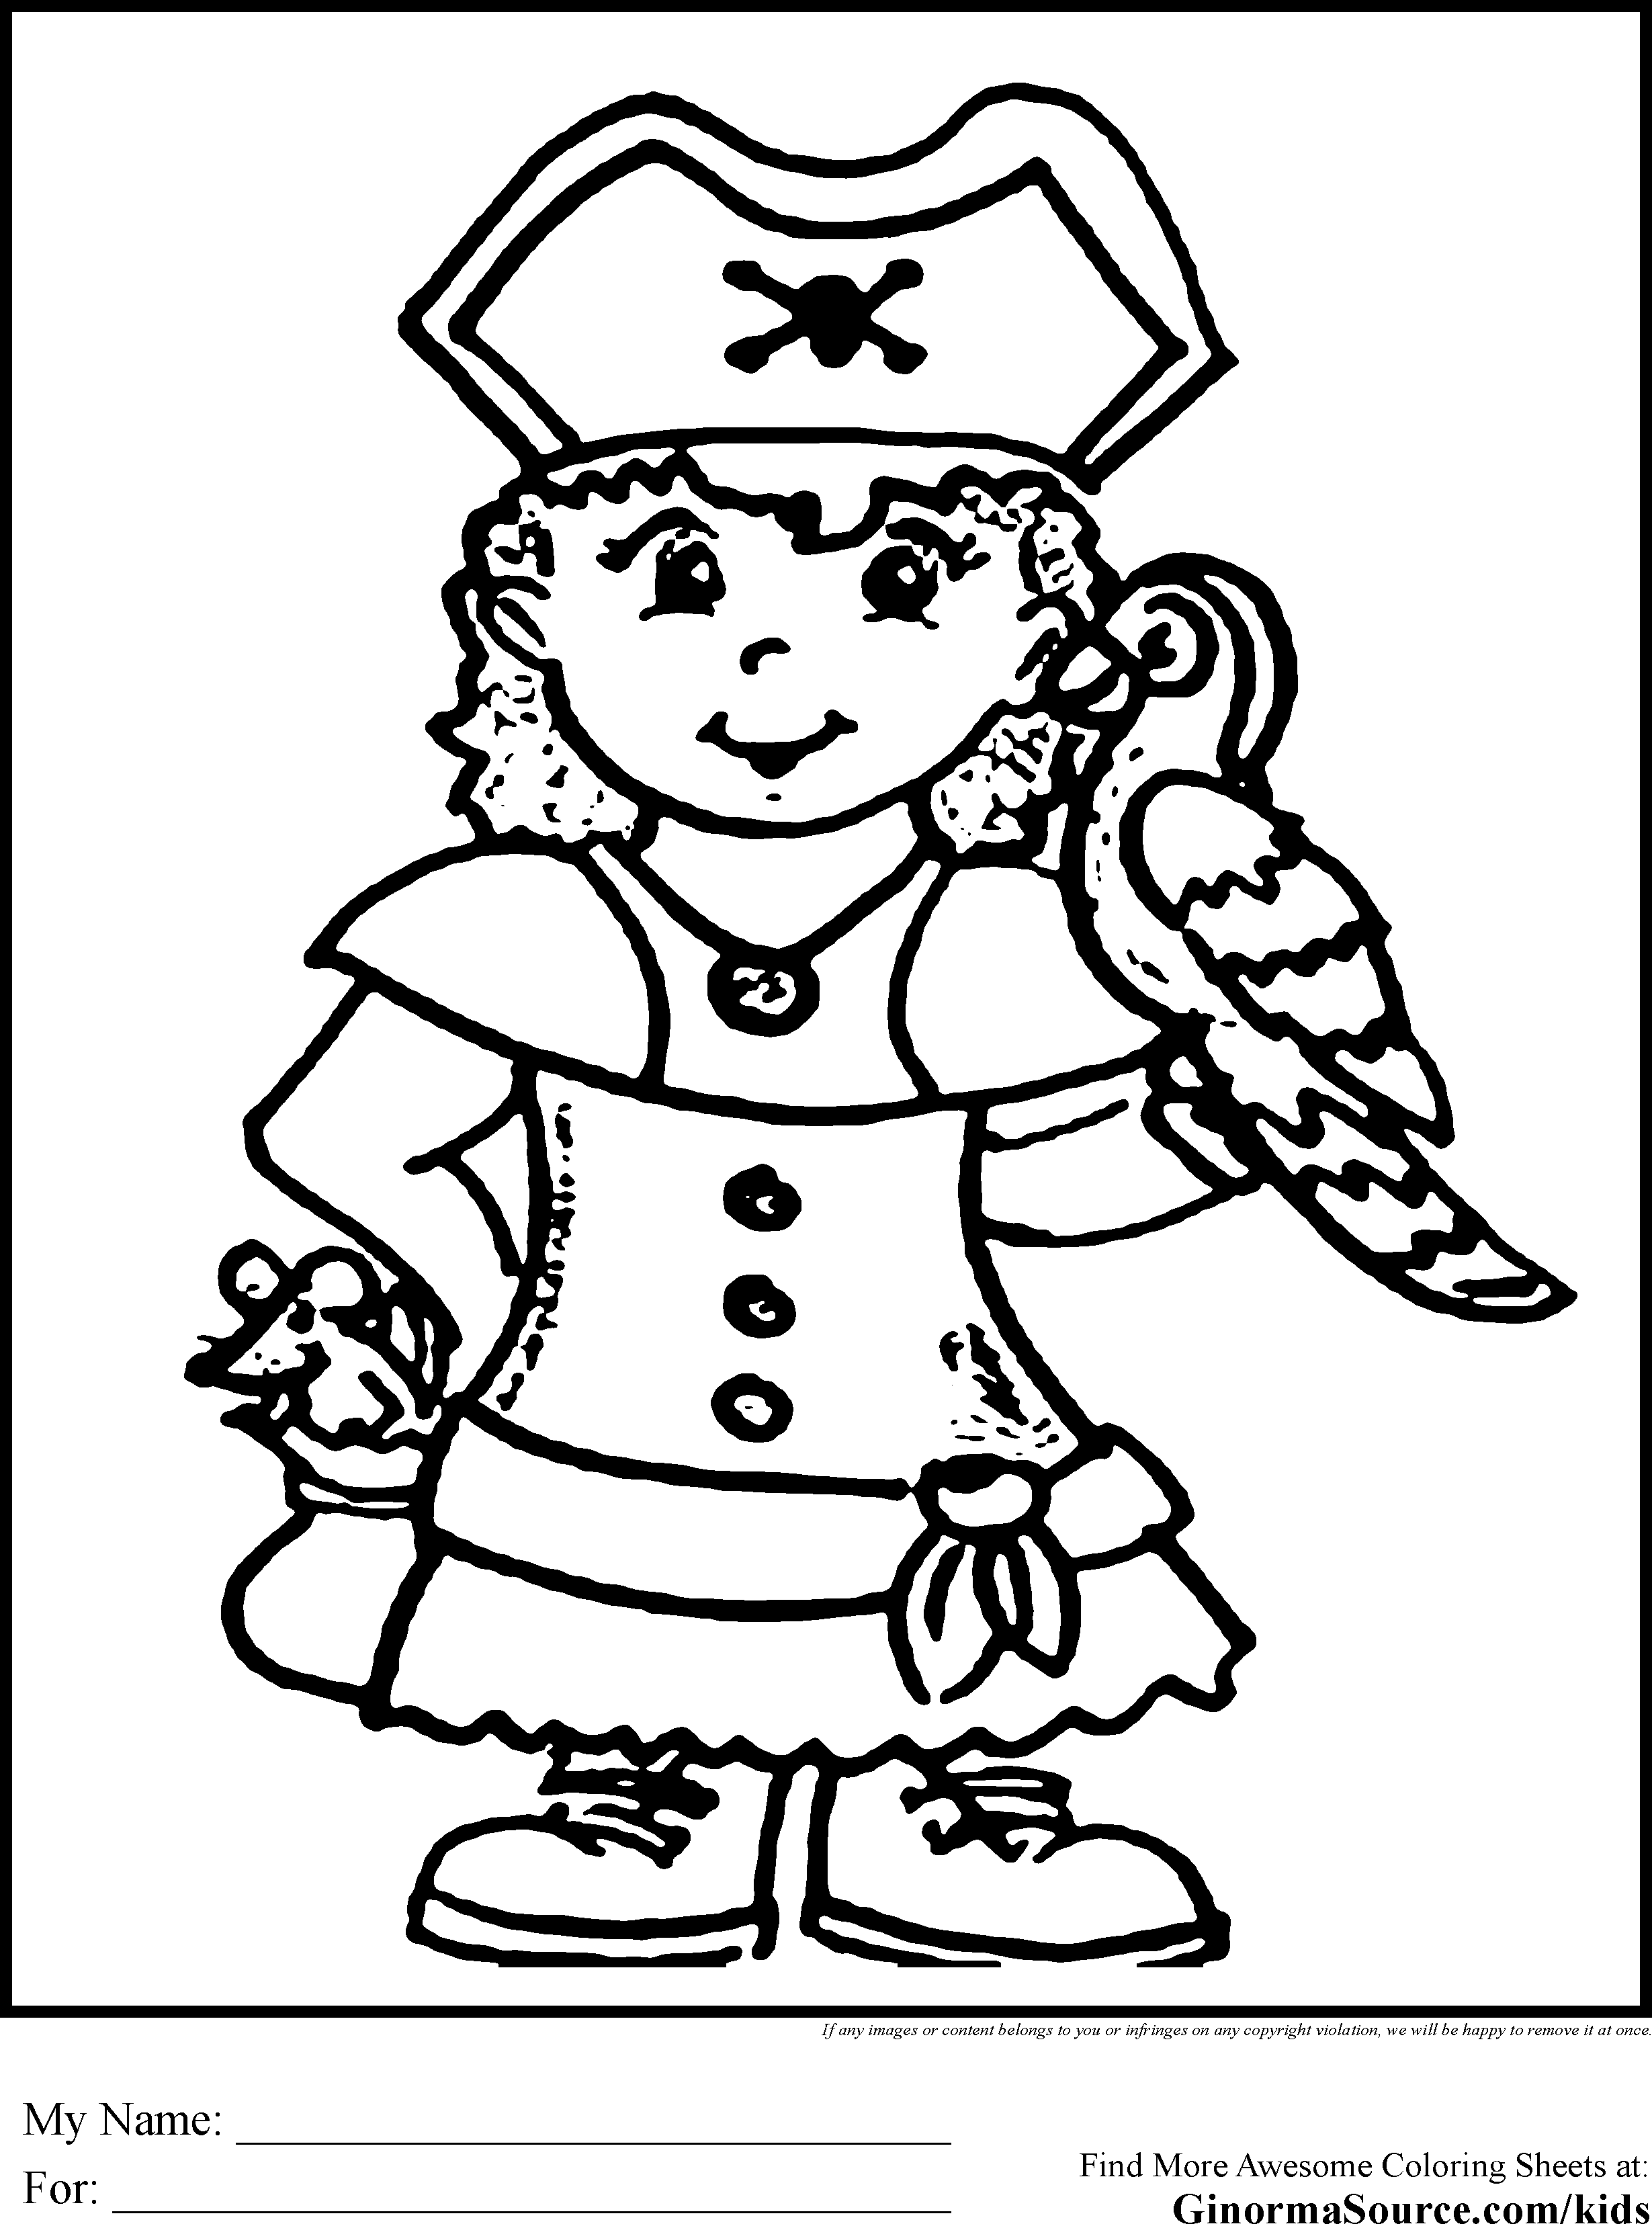 dulemba pirate coloring pages - photo#13